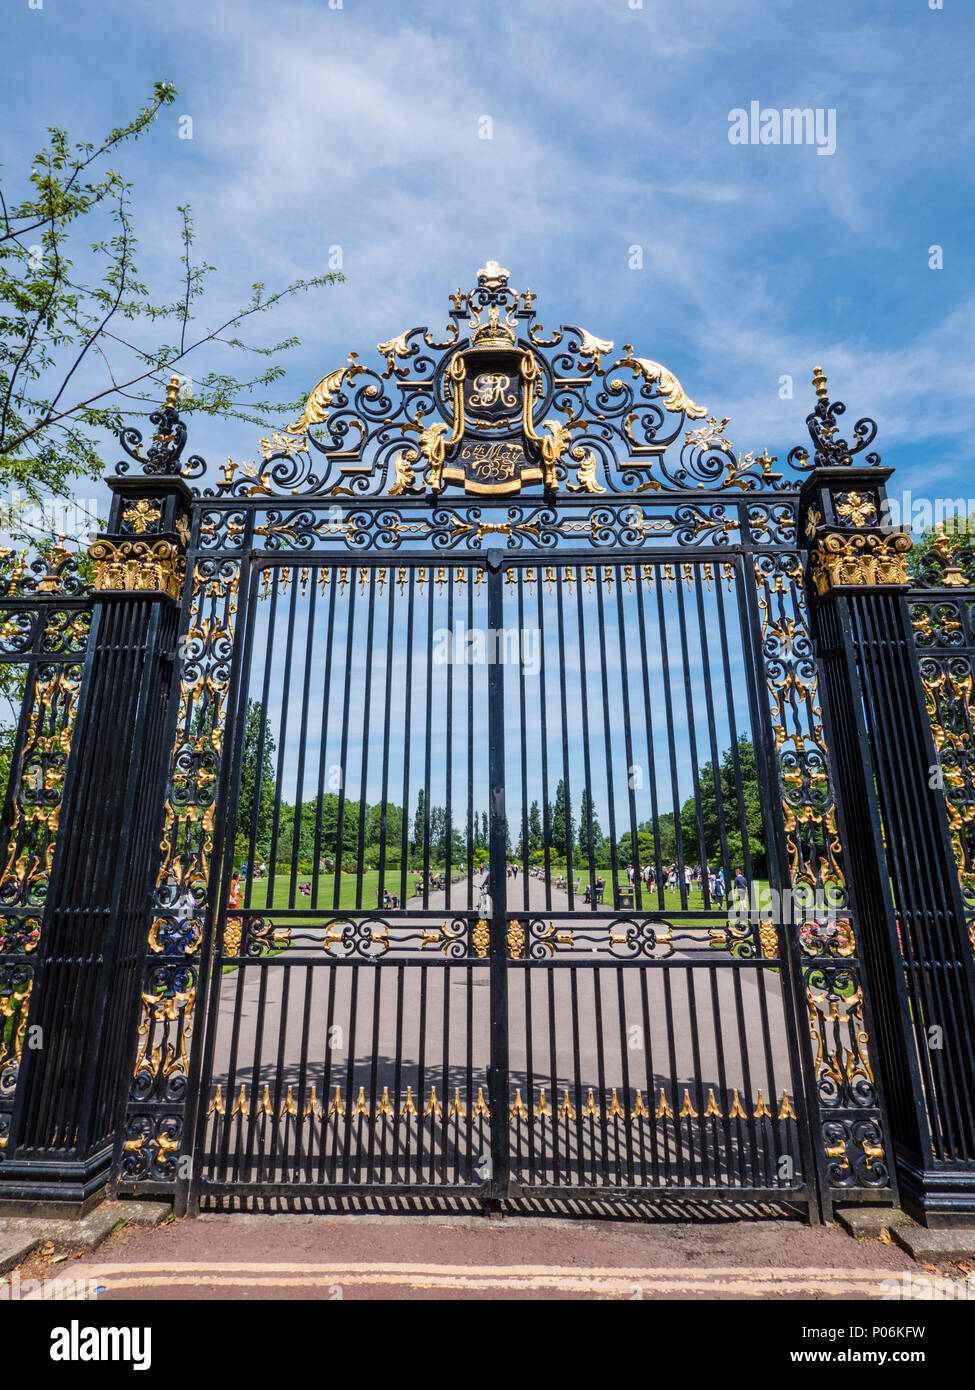 Gates to Regents Park, From the Inner Circle, Regents Park, London, England, UK, GB - Stock Image